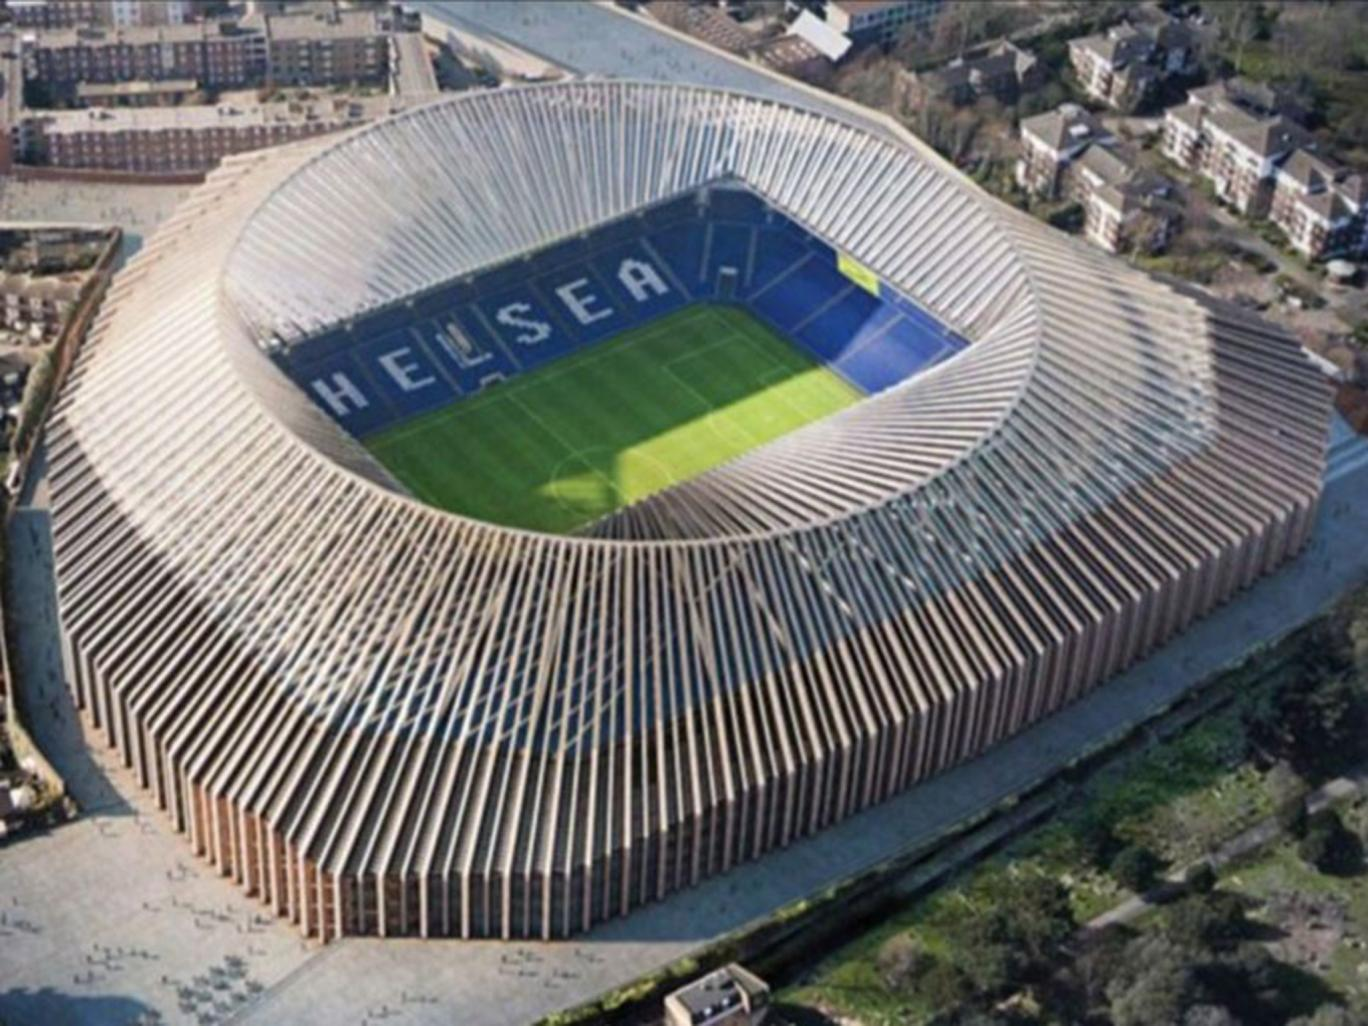 New Stamford Bridge